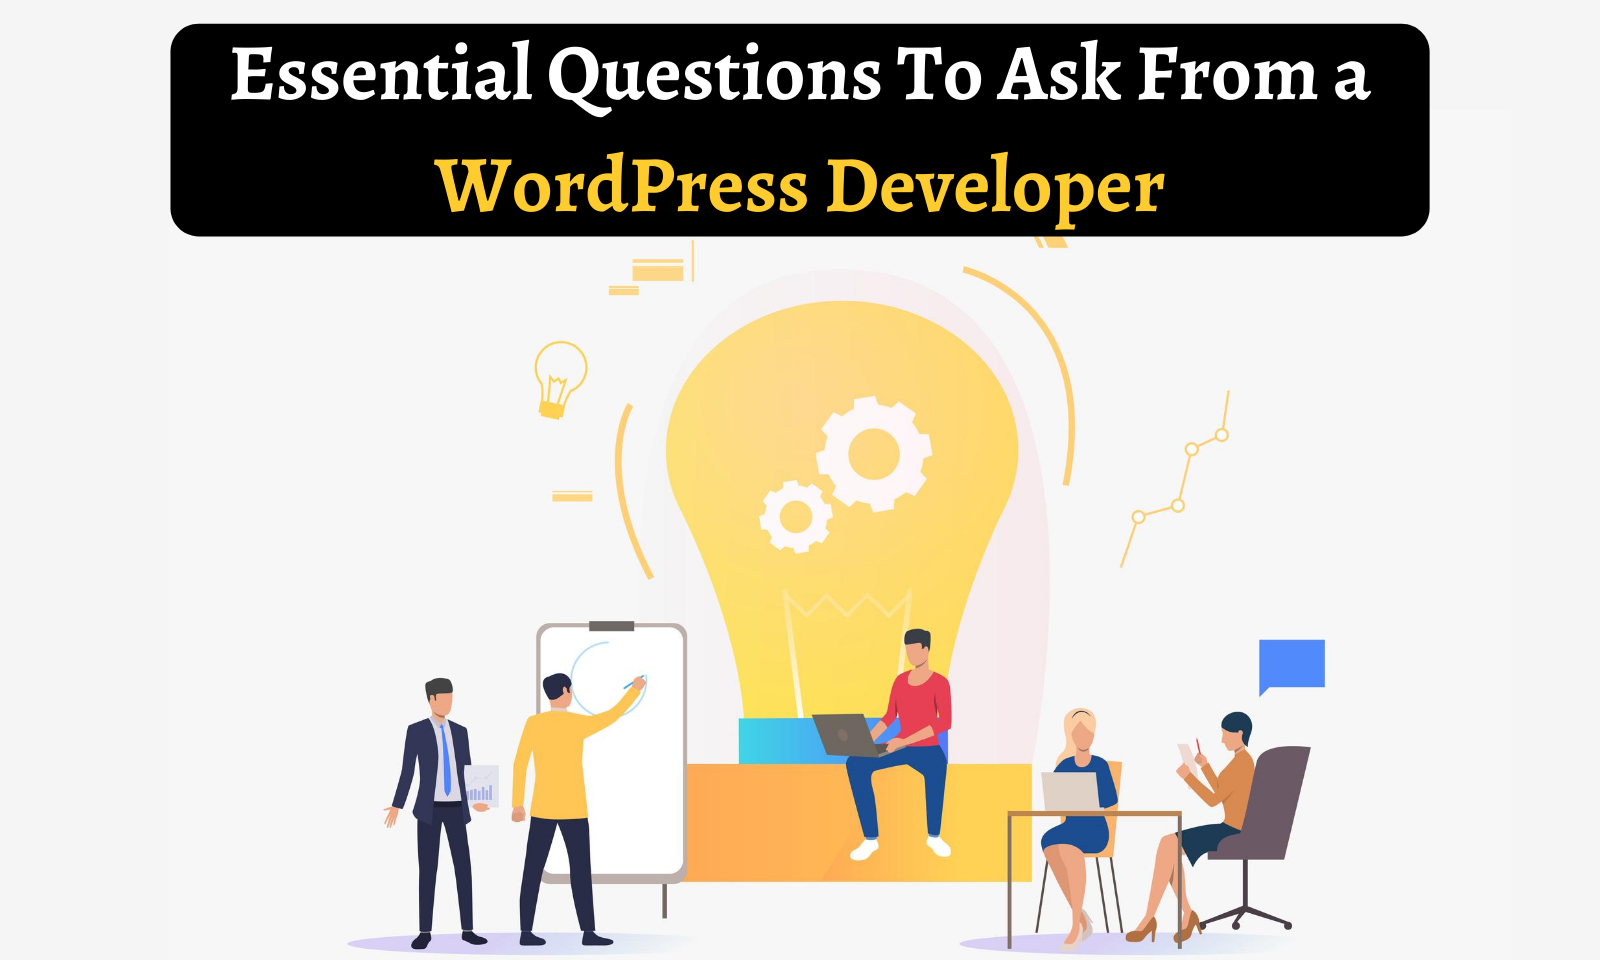 Essential Questions to ask from wordpress developer